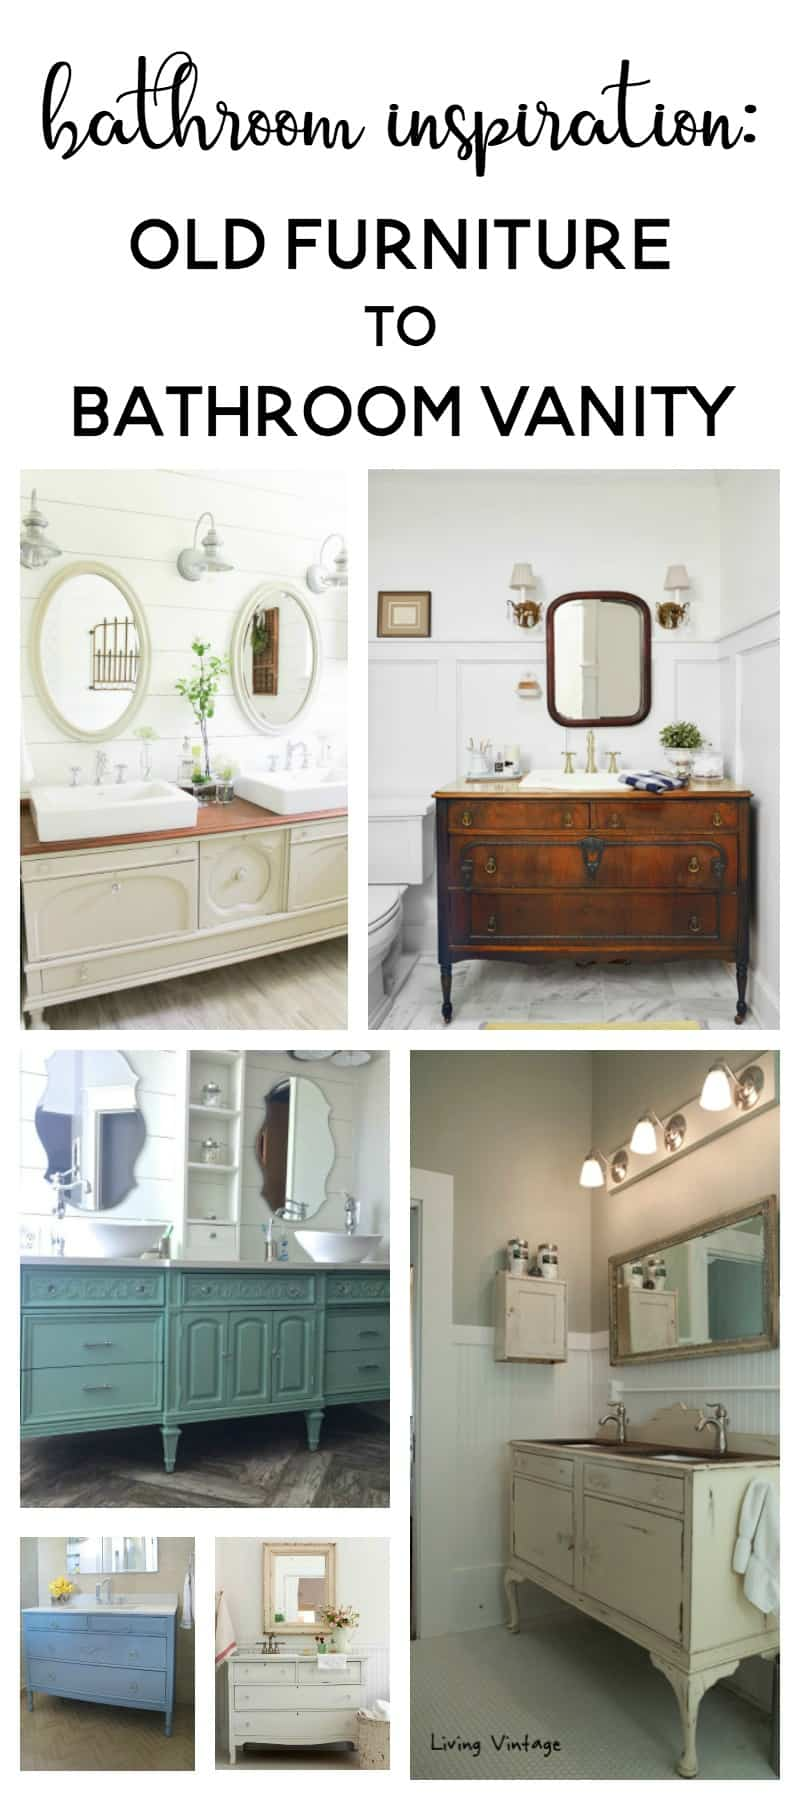 bathroom ideas | bathroom remodel | bathroom vanity | bathroom vanity ideas | bathroom vanity diy | diy bathroom vanity | vanity from old dresser diy | vanity ideas | diy vanity | old dresser ideas | diy bathroom